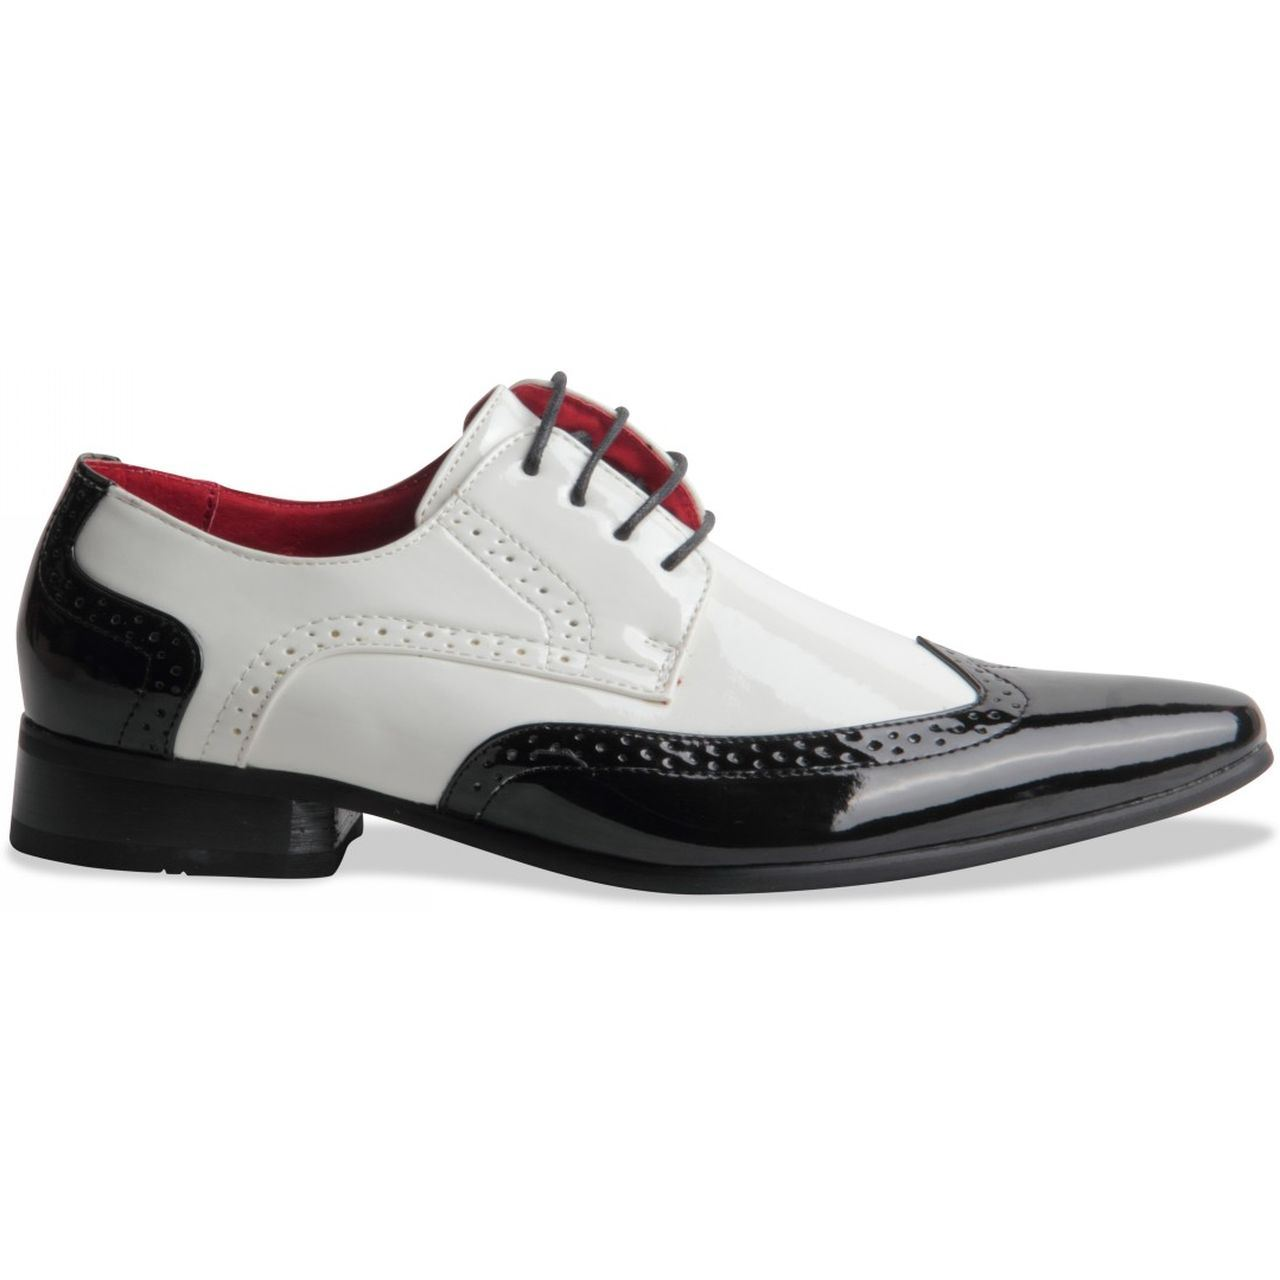 Casual Party Footwear. Pointed Toe Brogue Rossellini Men Lace-up Smart Shoes